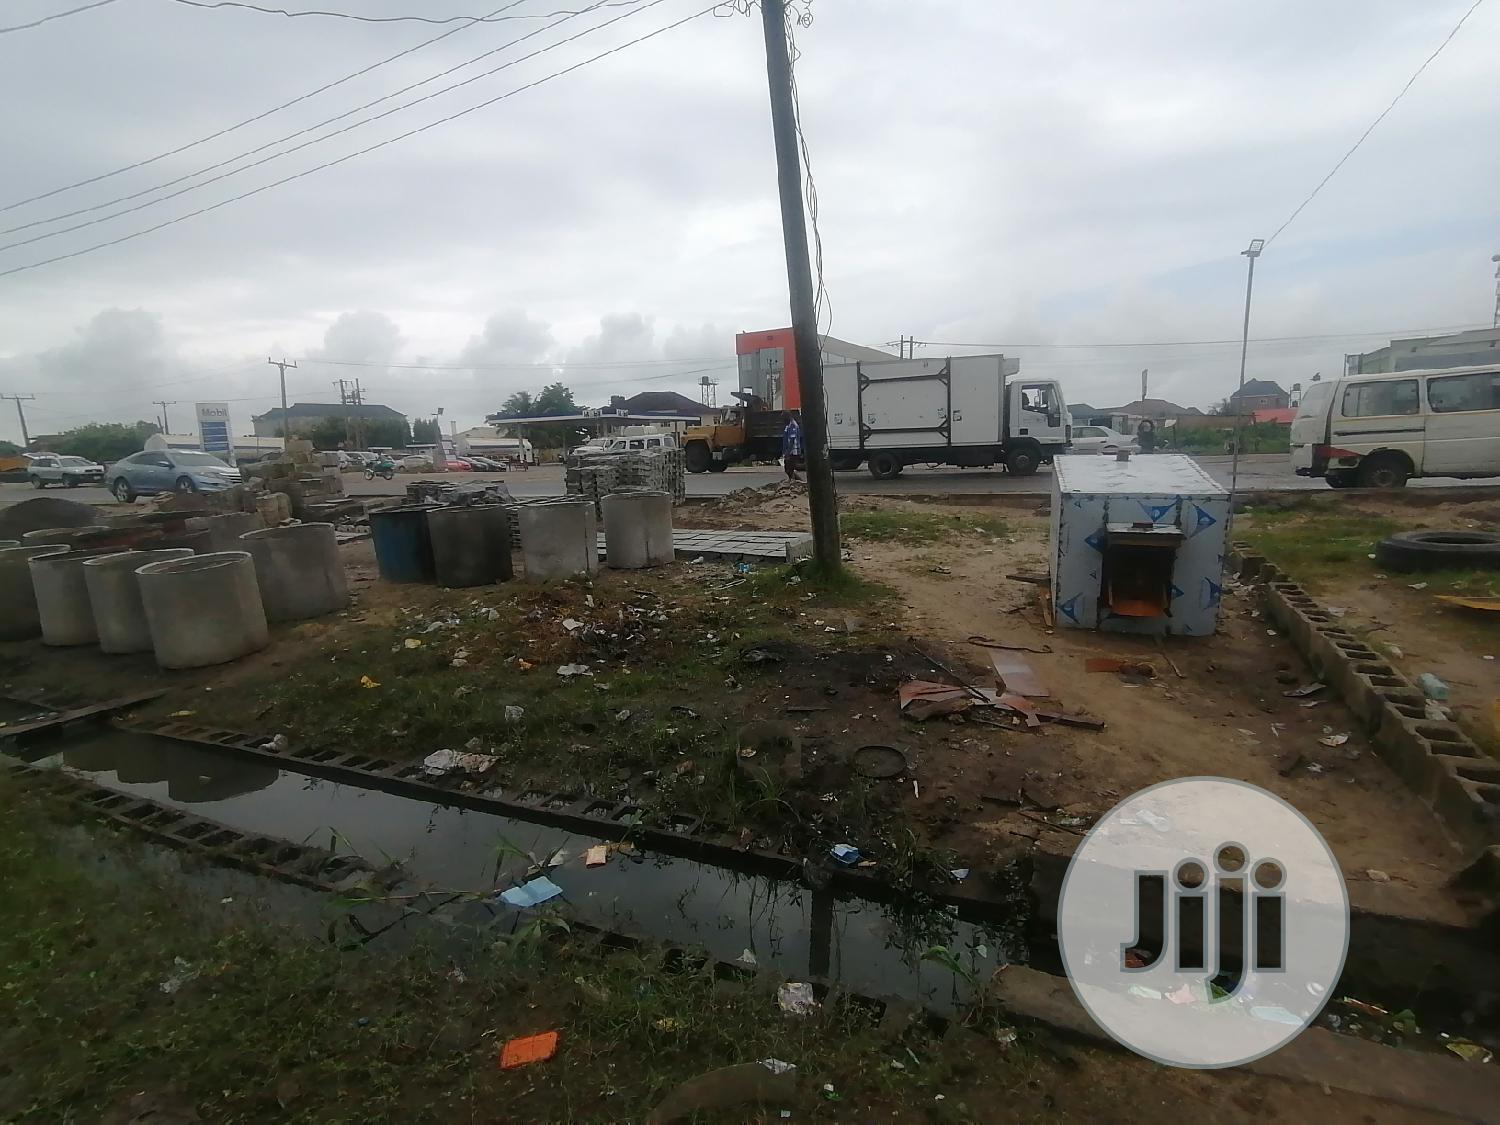 Half Plot For Rent Directly Facing Express At Eputu Town | Land & Plots for Rent for sale in Ibeju, Lagos State, Nigeria